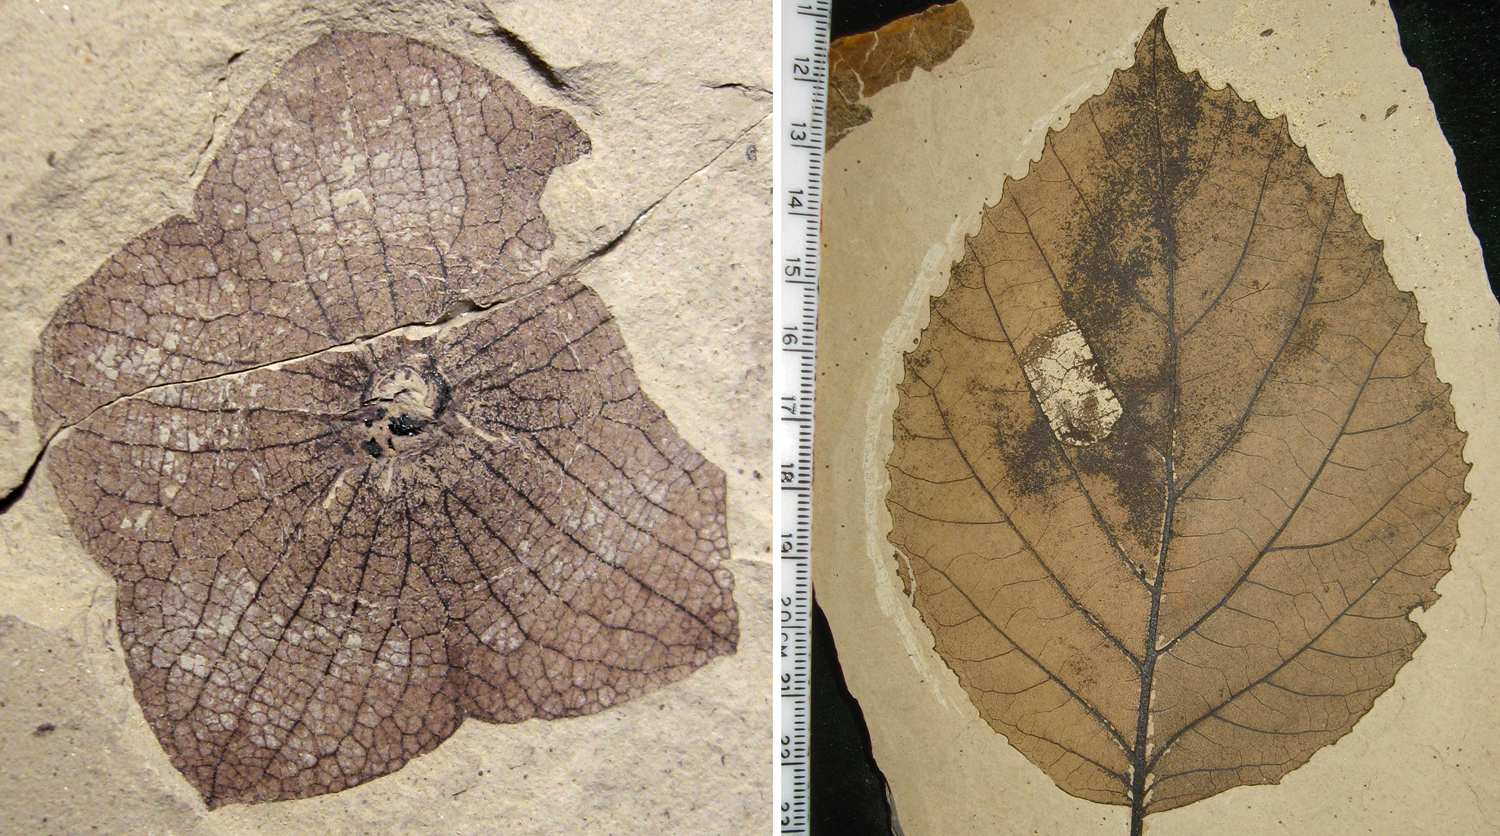 2-Panel figure showing fossil eudicots. Panel 1: 5-parted calyx of Florissantia. Panel 2: Fossil leaf of Langeria showing pinnate venation.